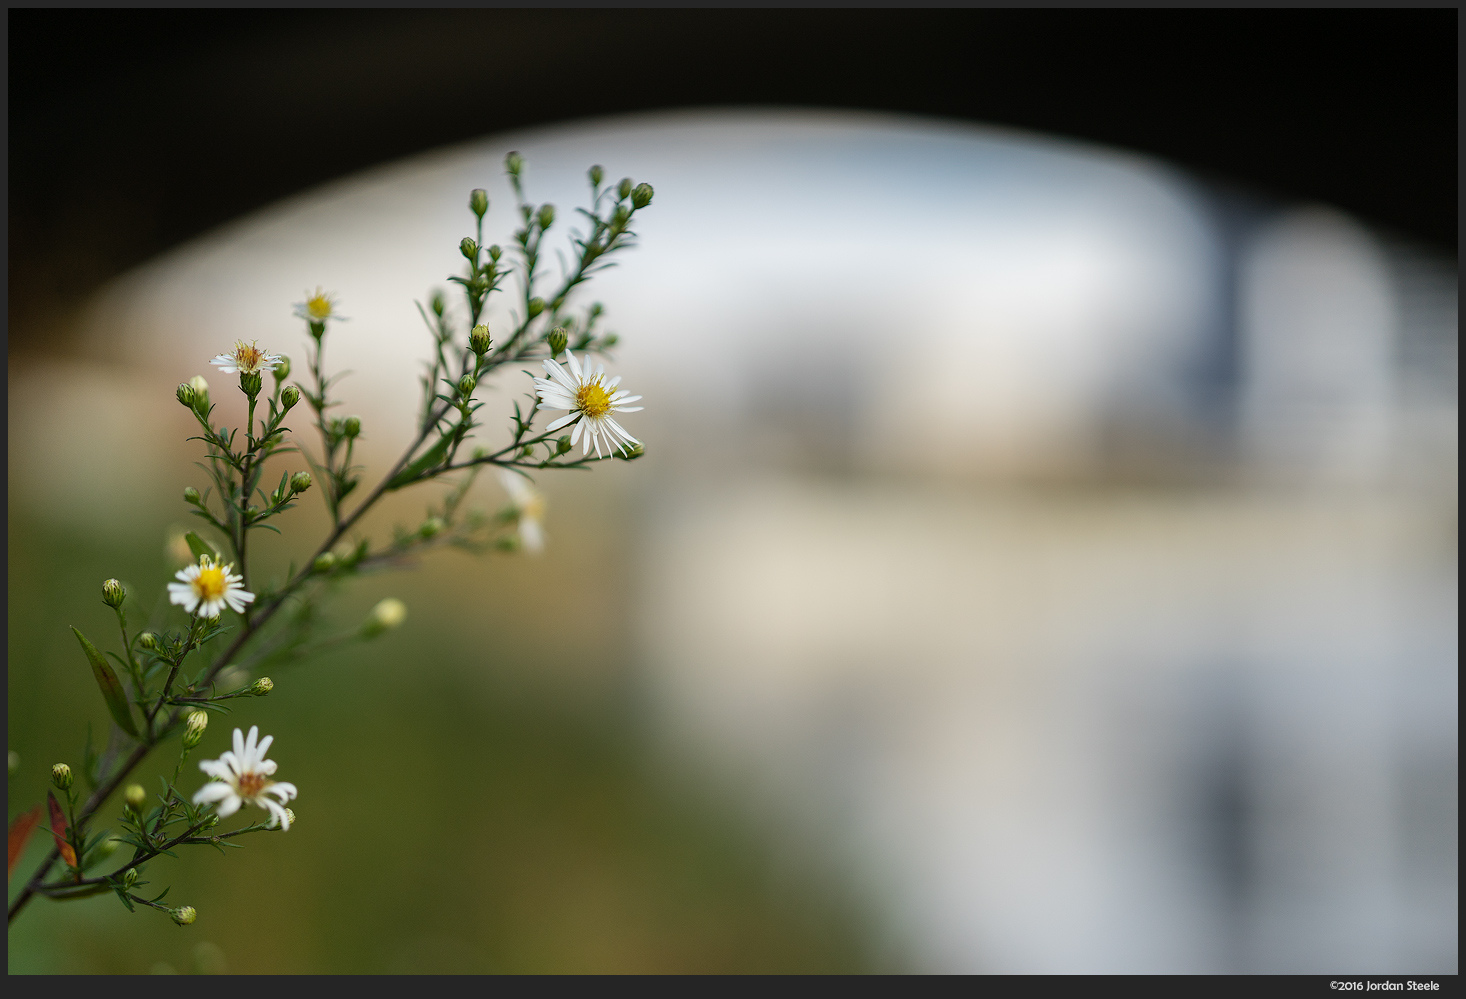 Flowers Under the Bridge - Sony A7 II with Zeiss FE 50mm f/1.4 @ f/1.4